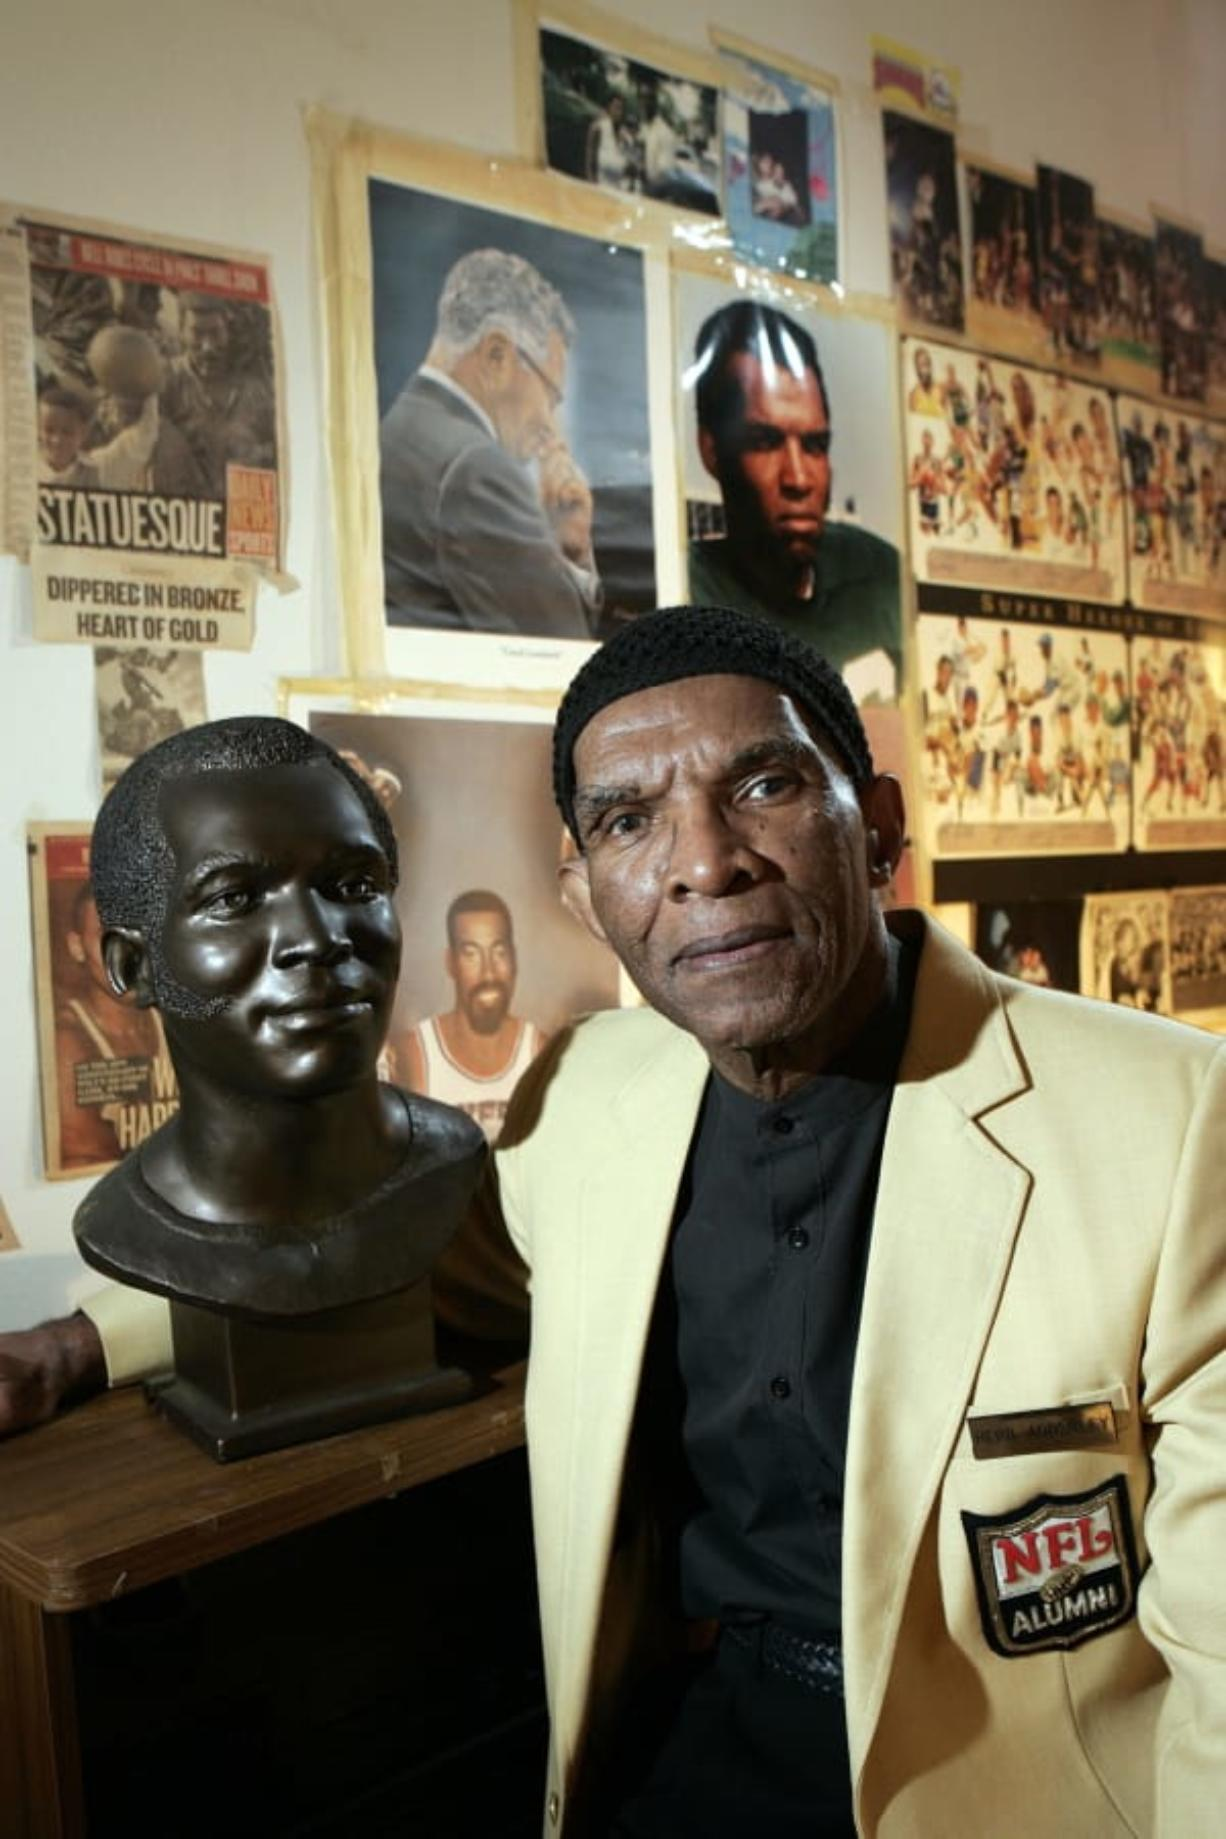 Former NFL player Herb Adderley poses next to a copy of his Hall of Fame bust in a room full of memorabilia from his playing days on Oct. 2, 2008, at his home in Mantua, N.J. The Hall of Fame cornerback has died at age 81. His death was confirmed Friday, Oct. 30, 2020, on Twitter by nephew Nasir Adderley, a safety for the Los Angeles Chargers. Adderley played on six NFL title teams over a 12-year career with Green Bay and Dallas.